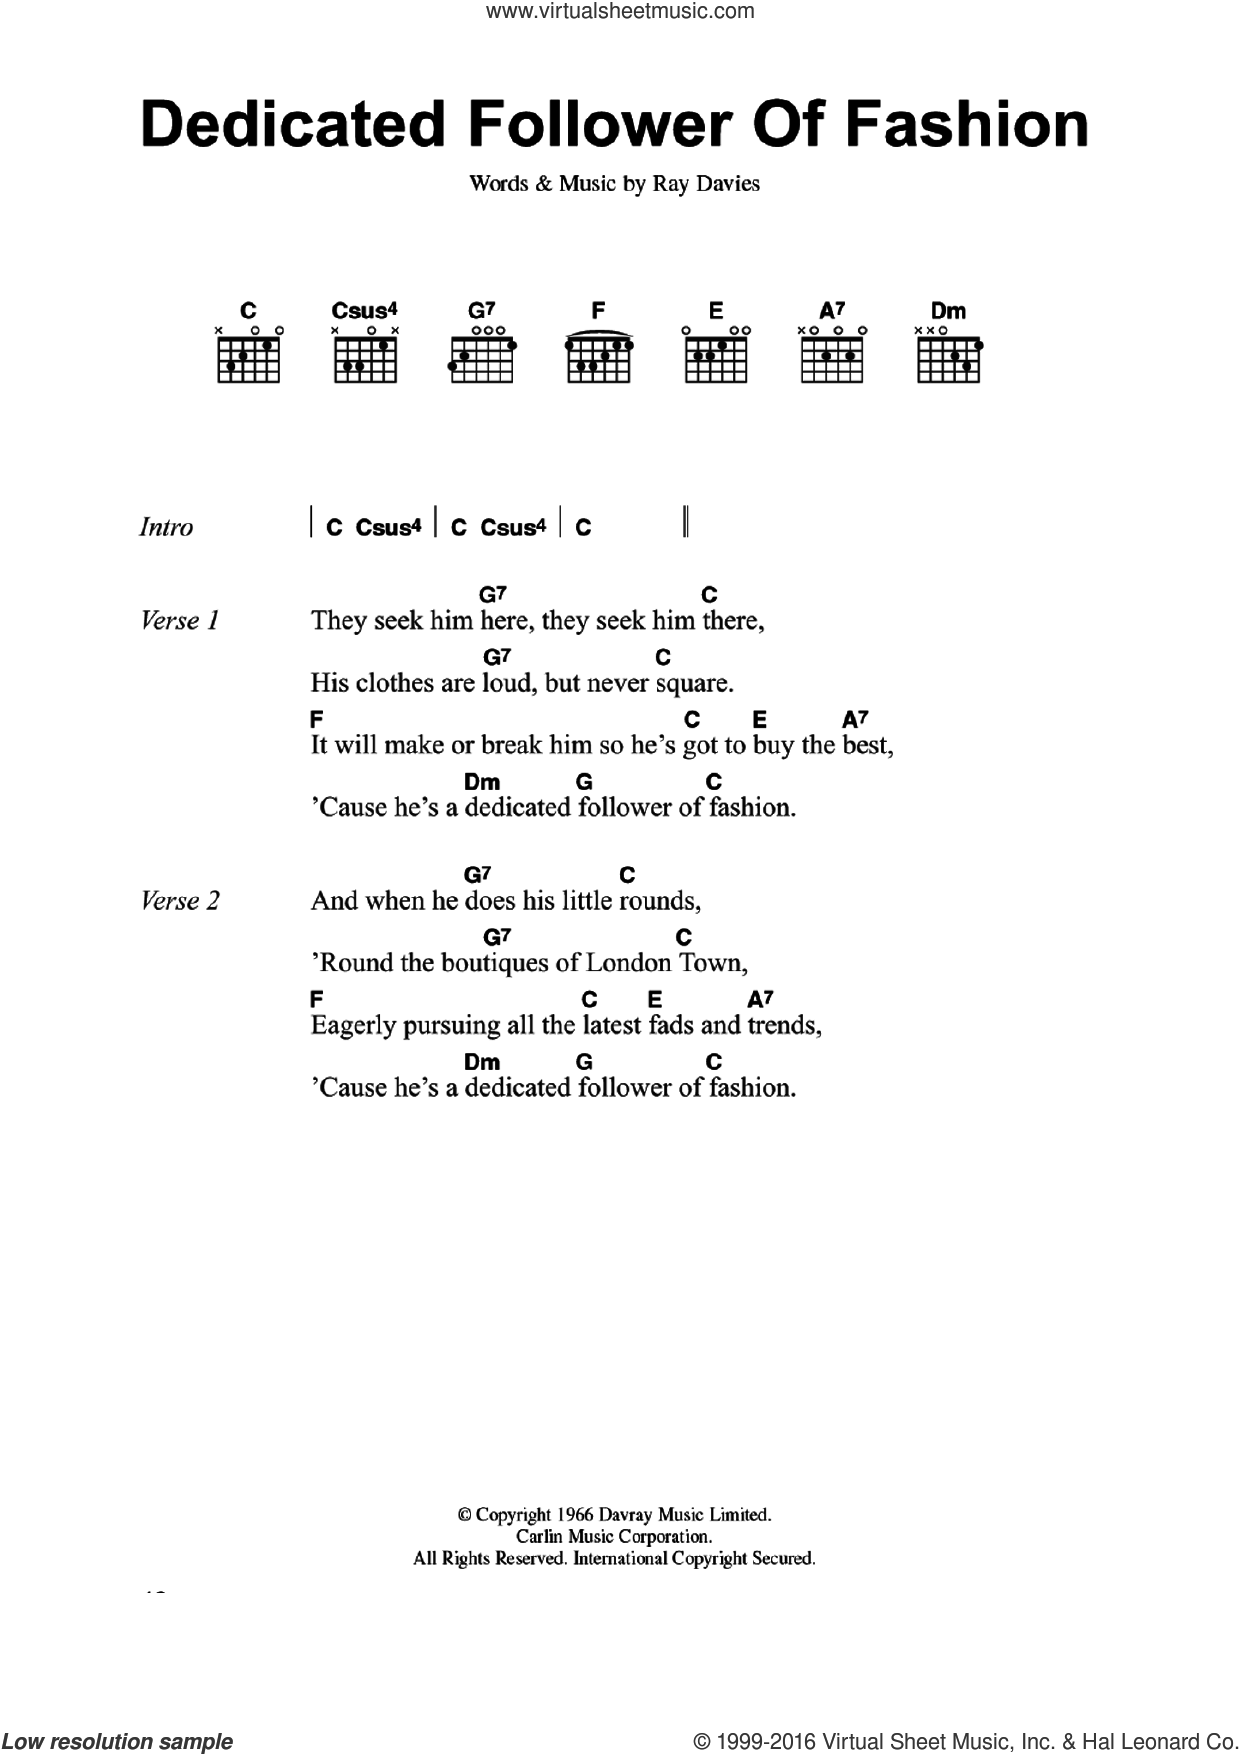 Dedicated Follower Of Fashion sheet music for guitar (chords) by The Kinks and Ray Davies, intermediate skill level